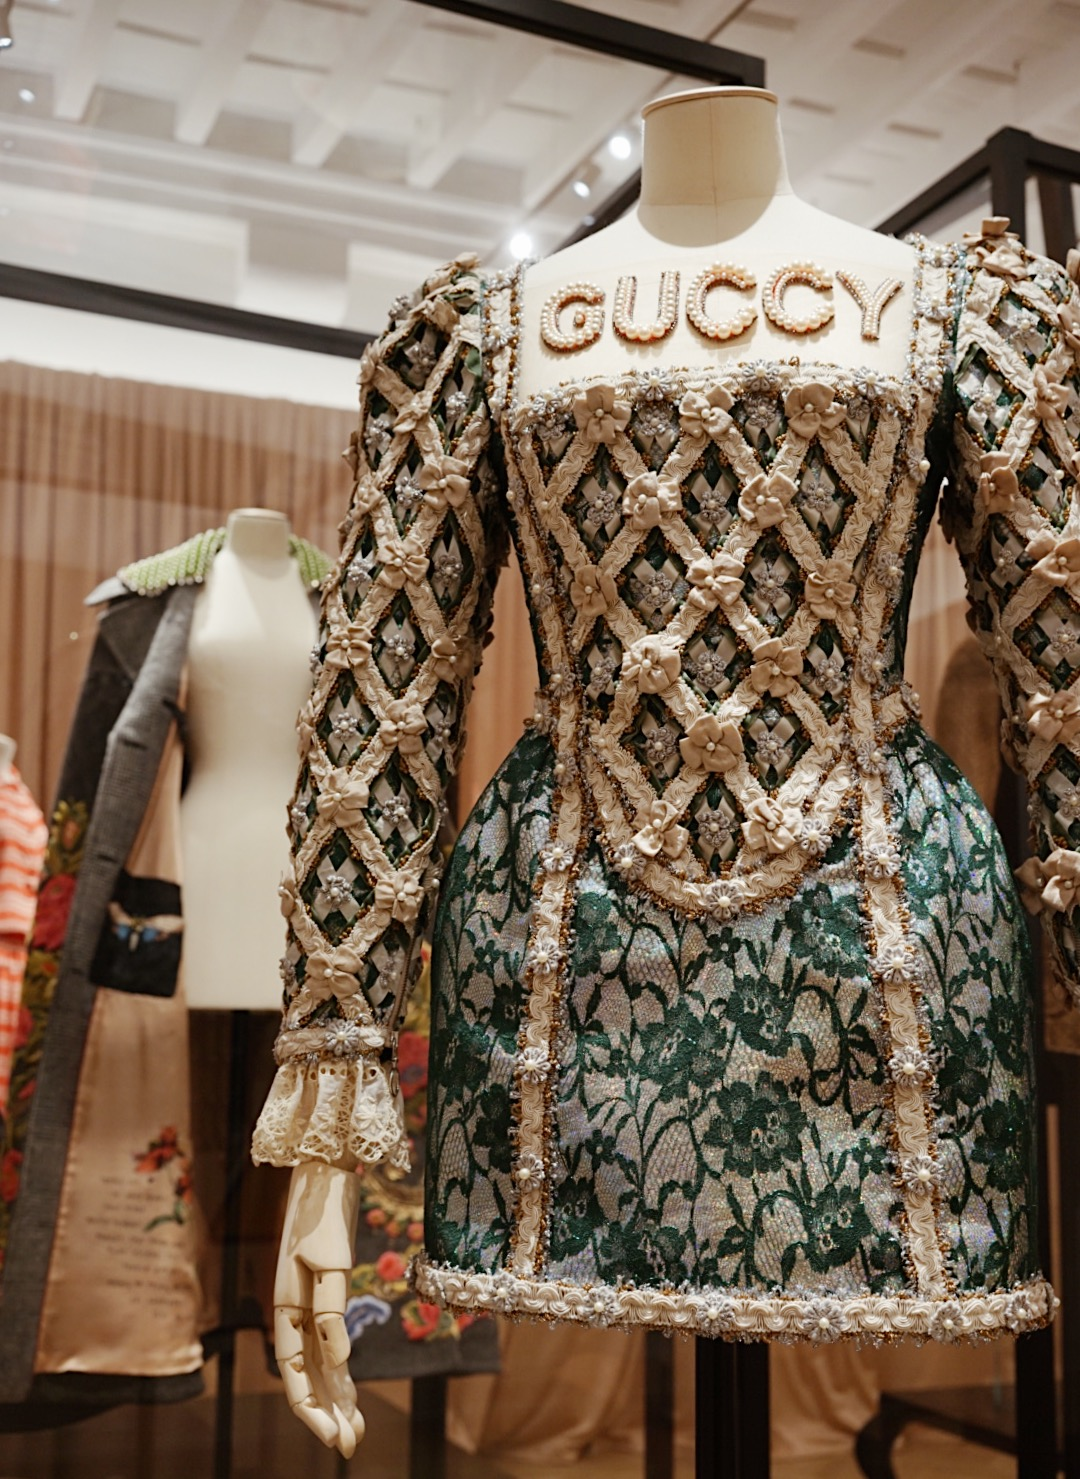 Florence_GucciGarden6.JPG